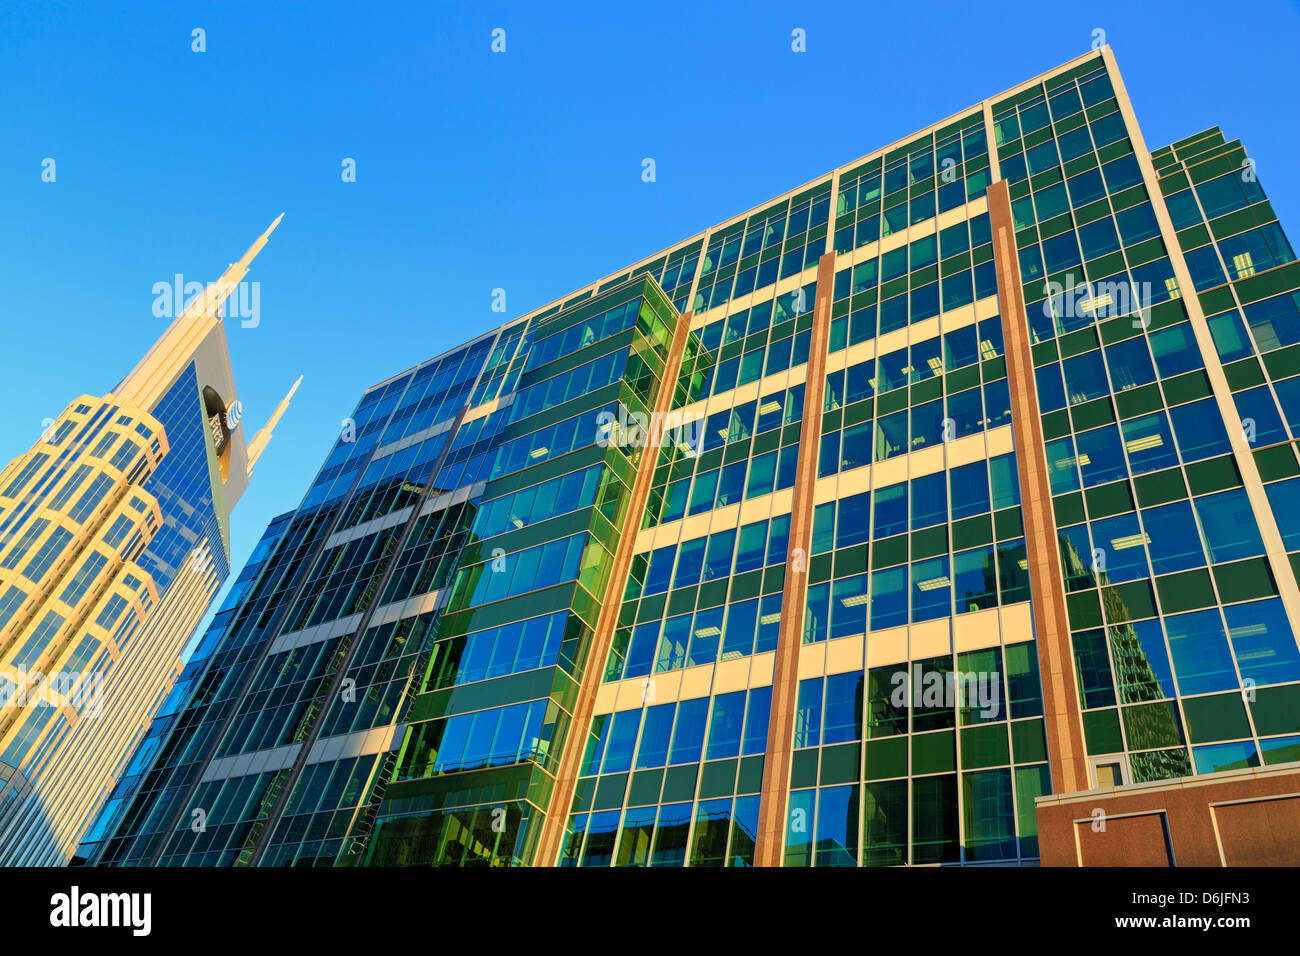 SunTrust Plaza and 333 Commerce Tower, Nashville, Tennessee, United States of America, North America - Stock Image